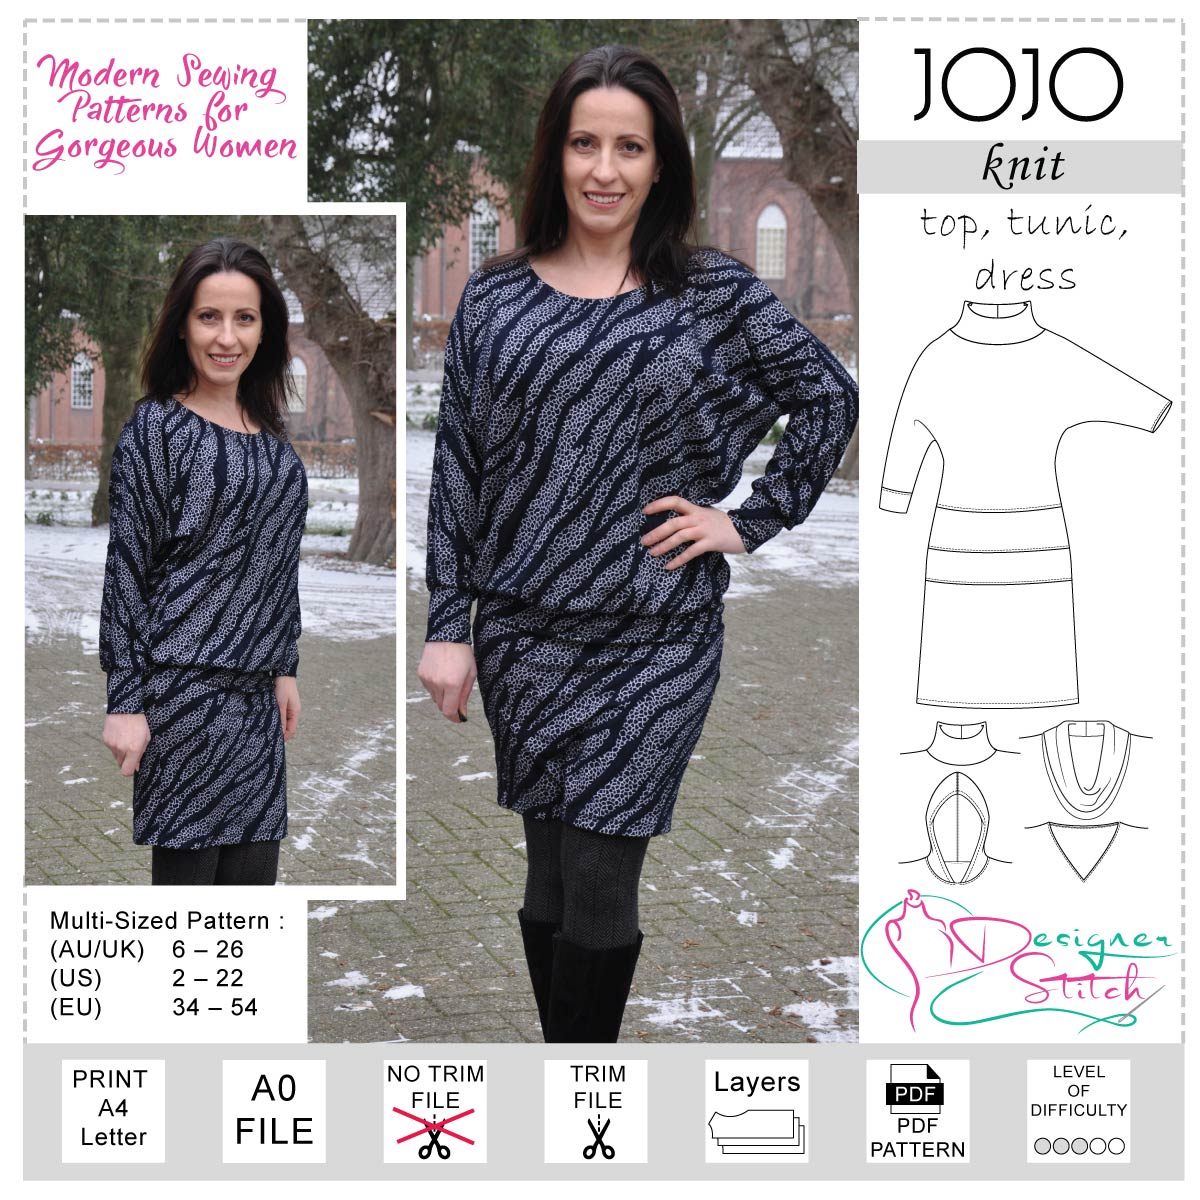 68da5feafb76 JoJo Top Tunic Dress Sewing Pattern (PDF) - Designer Stitch